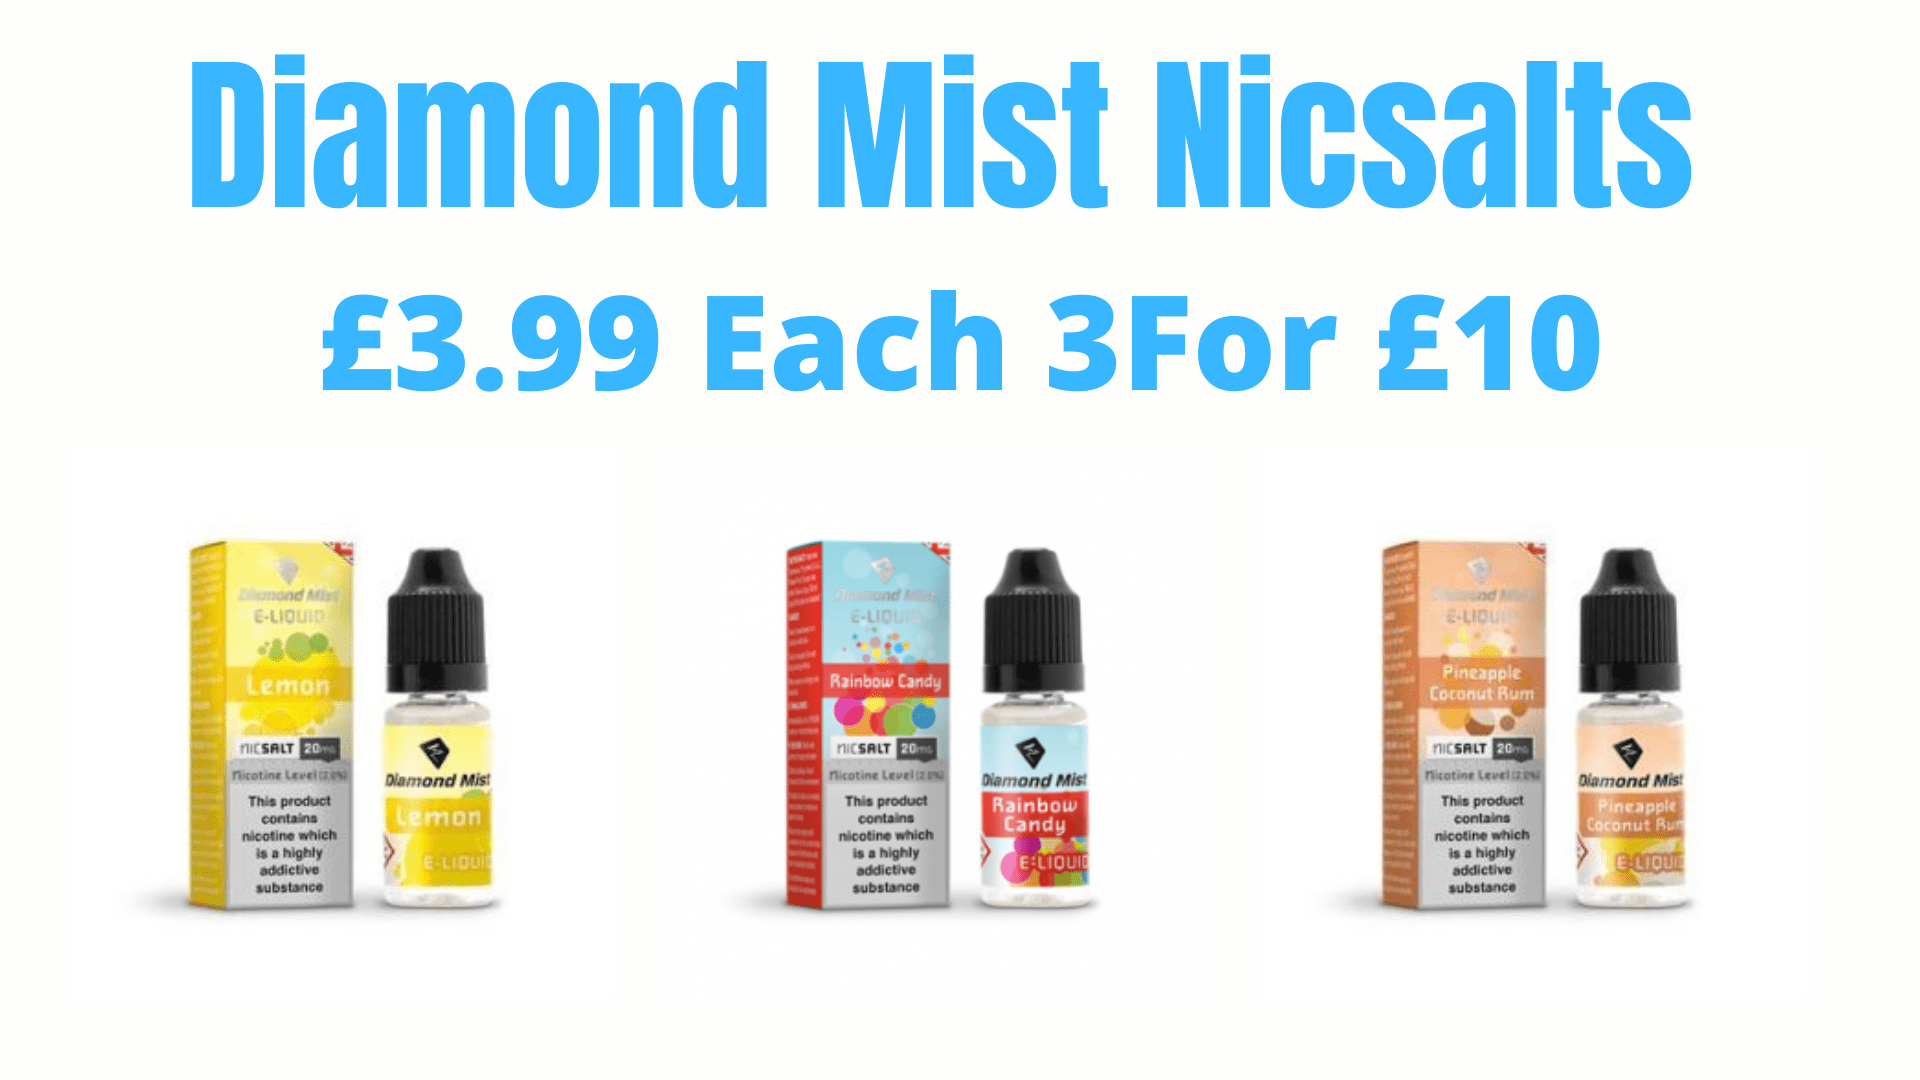 Diamond mist nicsalt deal